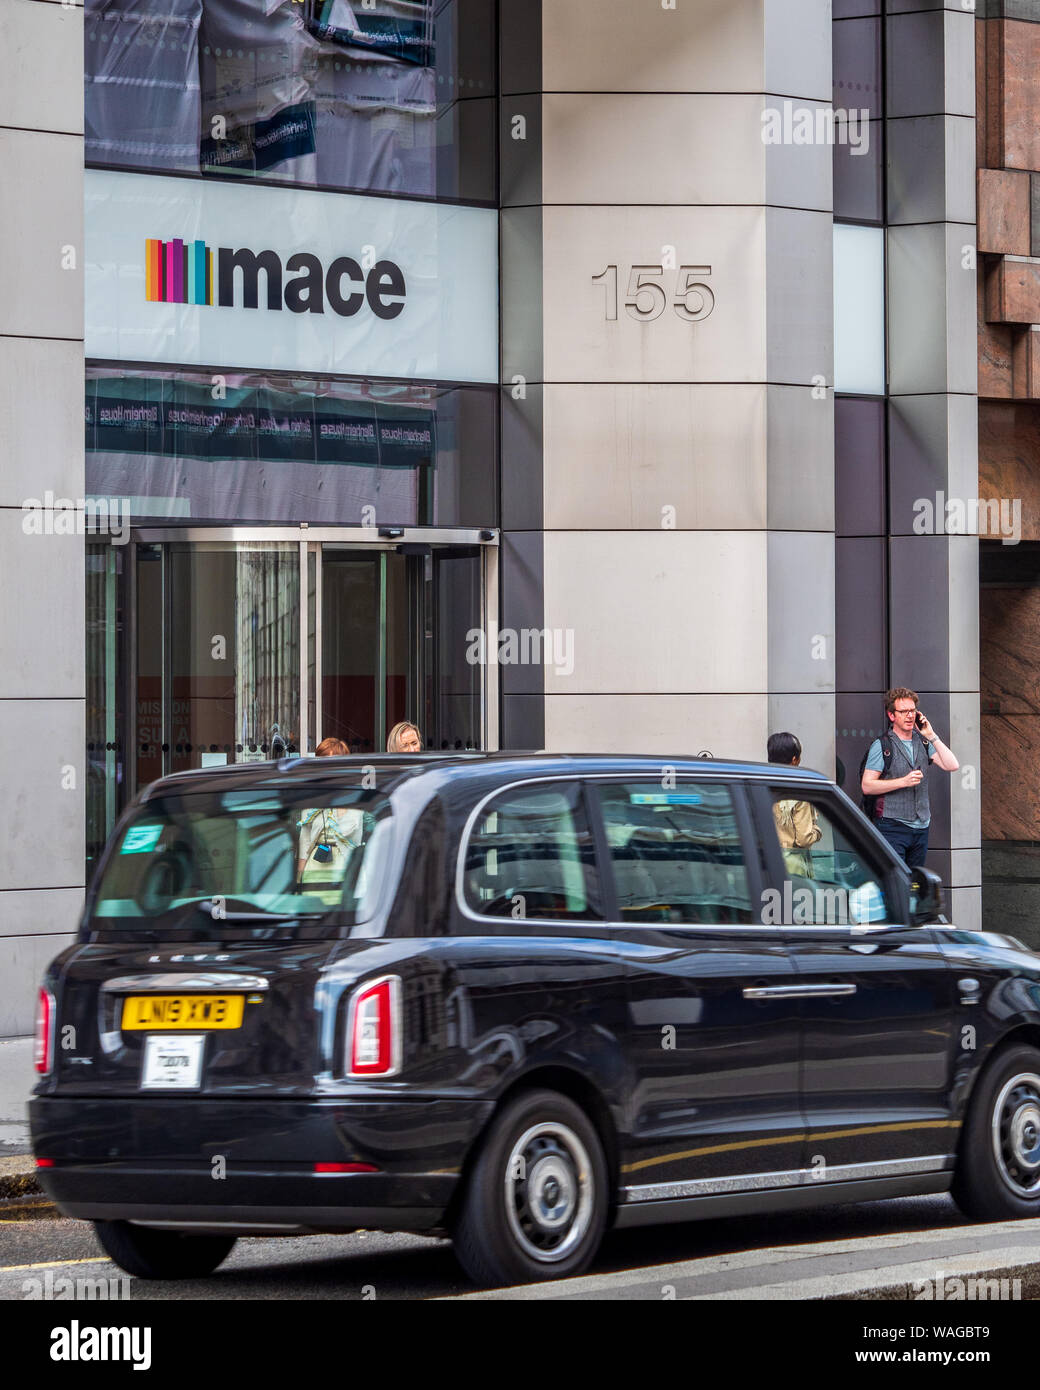 Mace Group HQ Head Office in Moorgate in the City of London